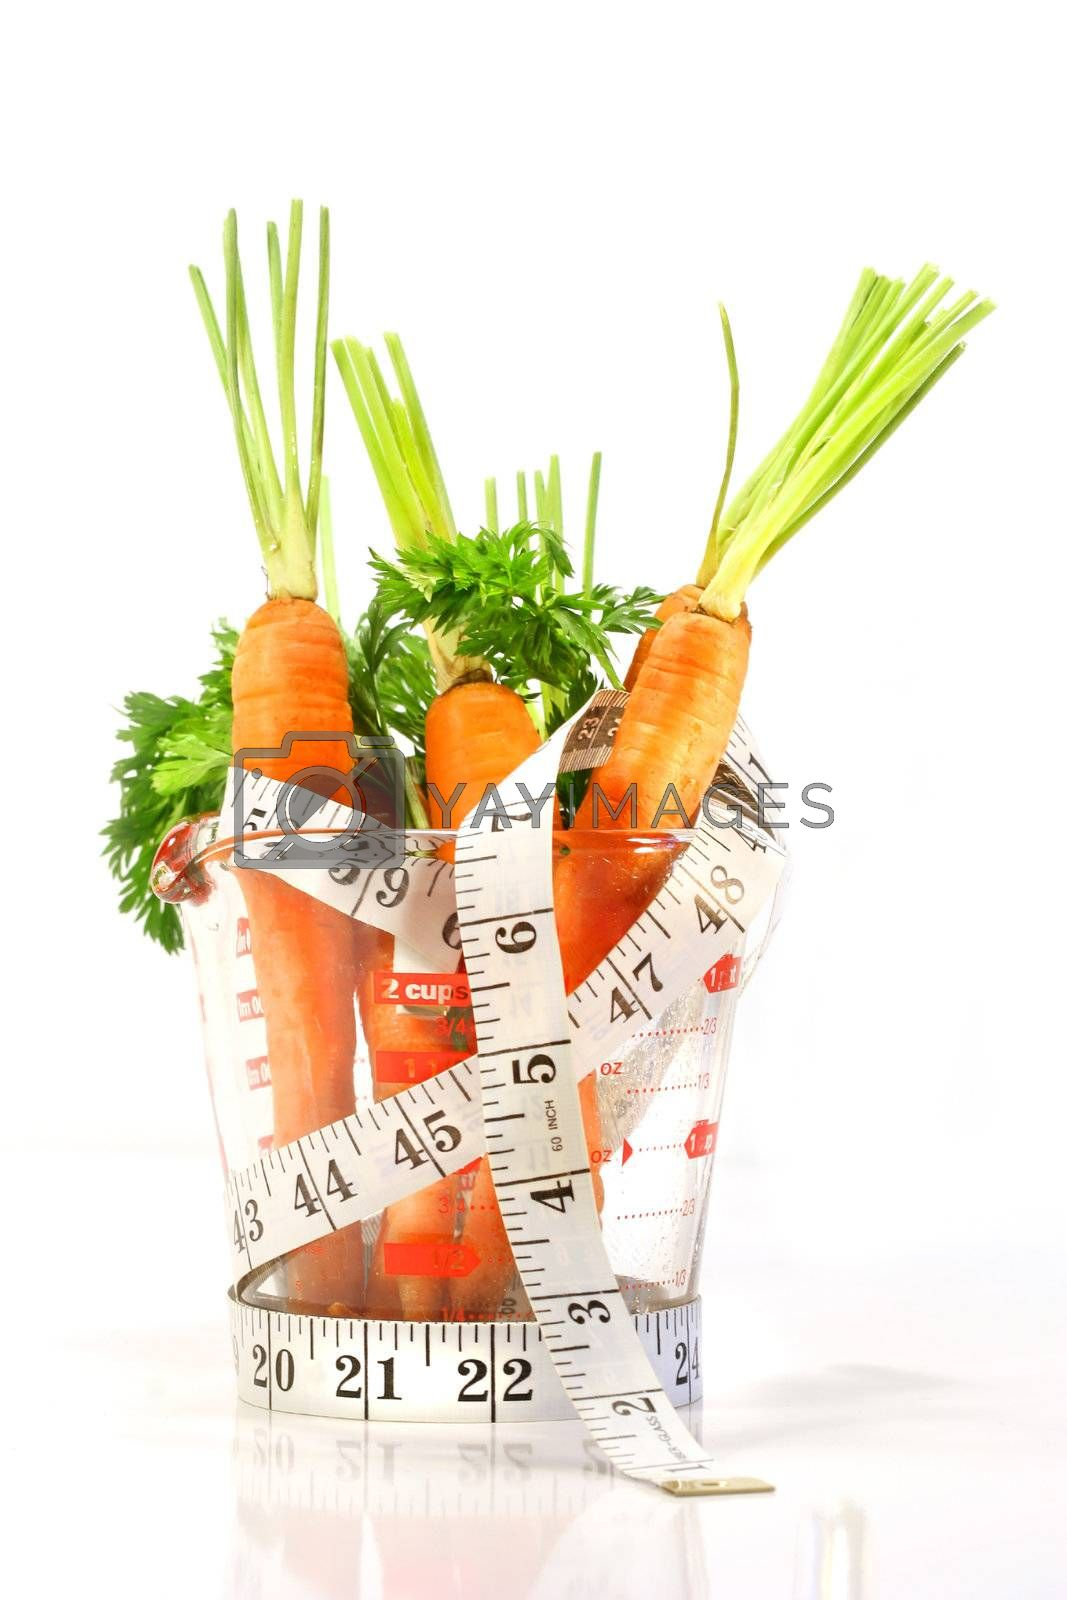 Carrots in a measuring cup with tape measure on white background